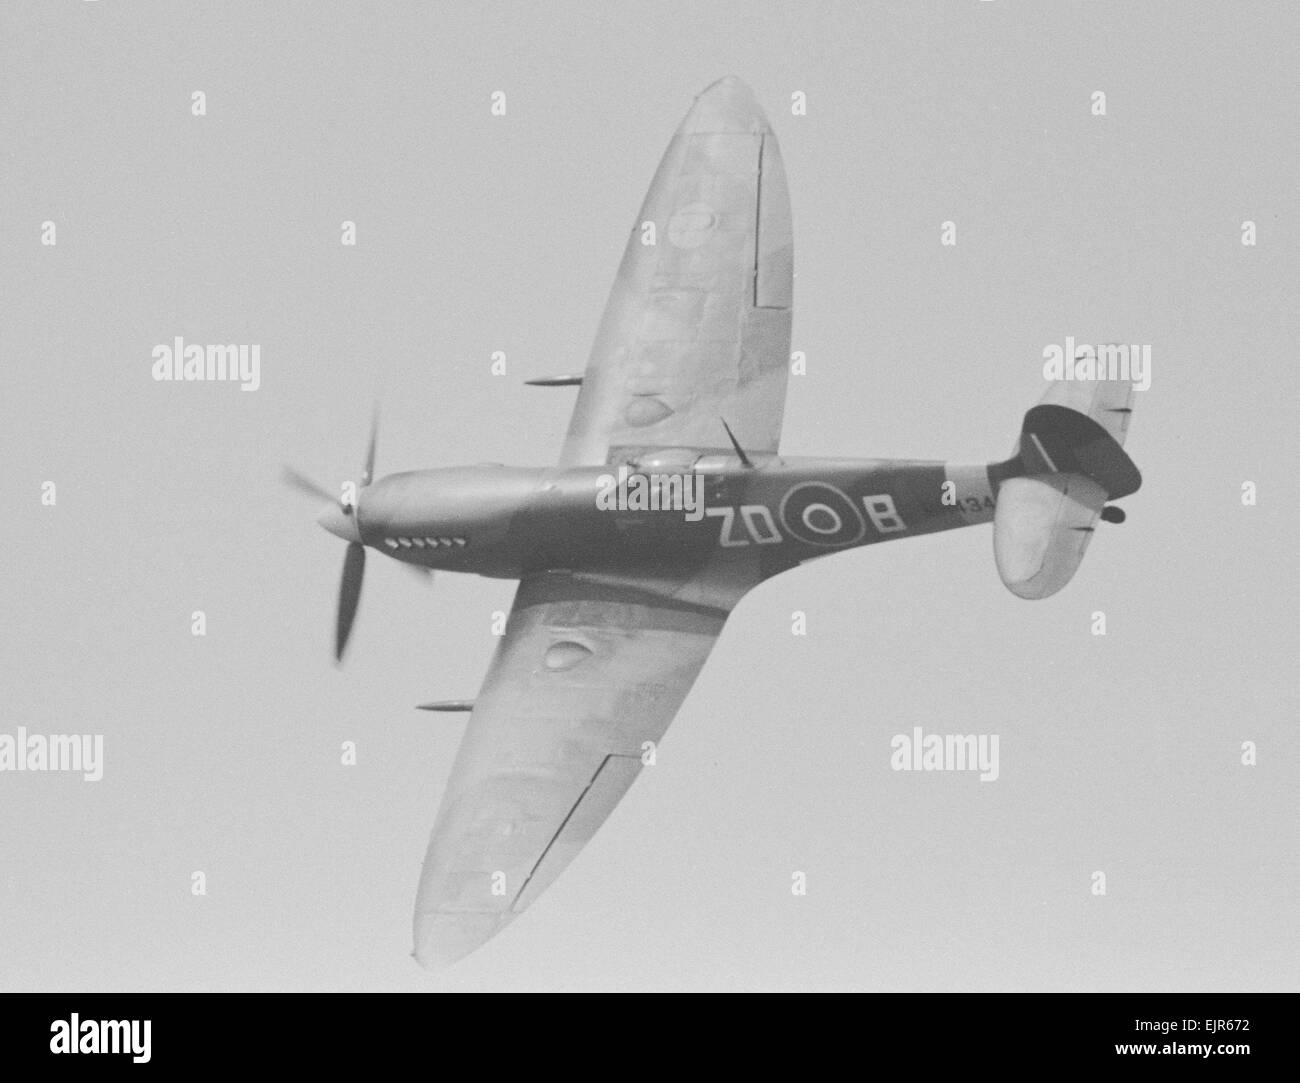 Spitfire Mk IXB MH434 was built in 1943 at Vickers, Castle Bromwich. This Spitfire is completely original, and has - Stock Image